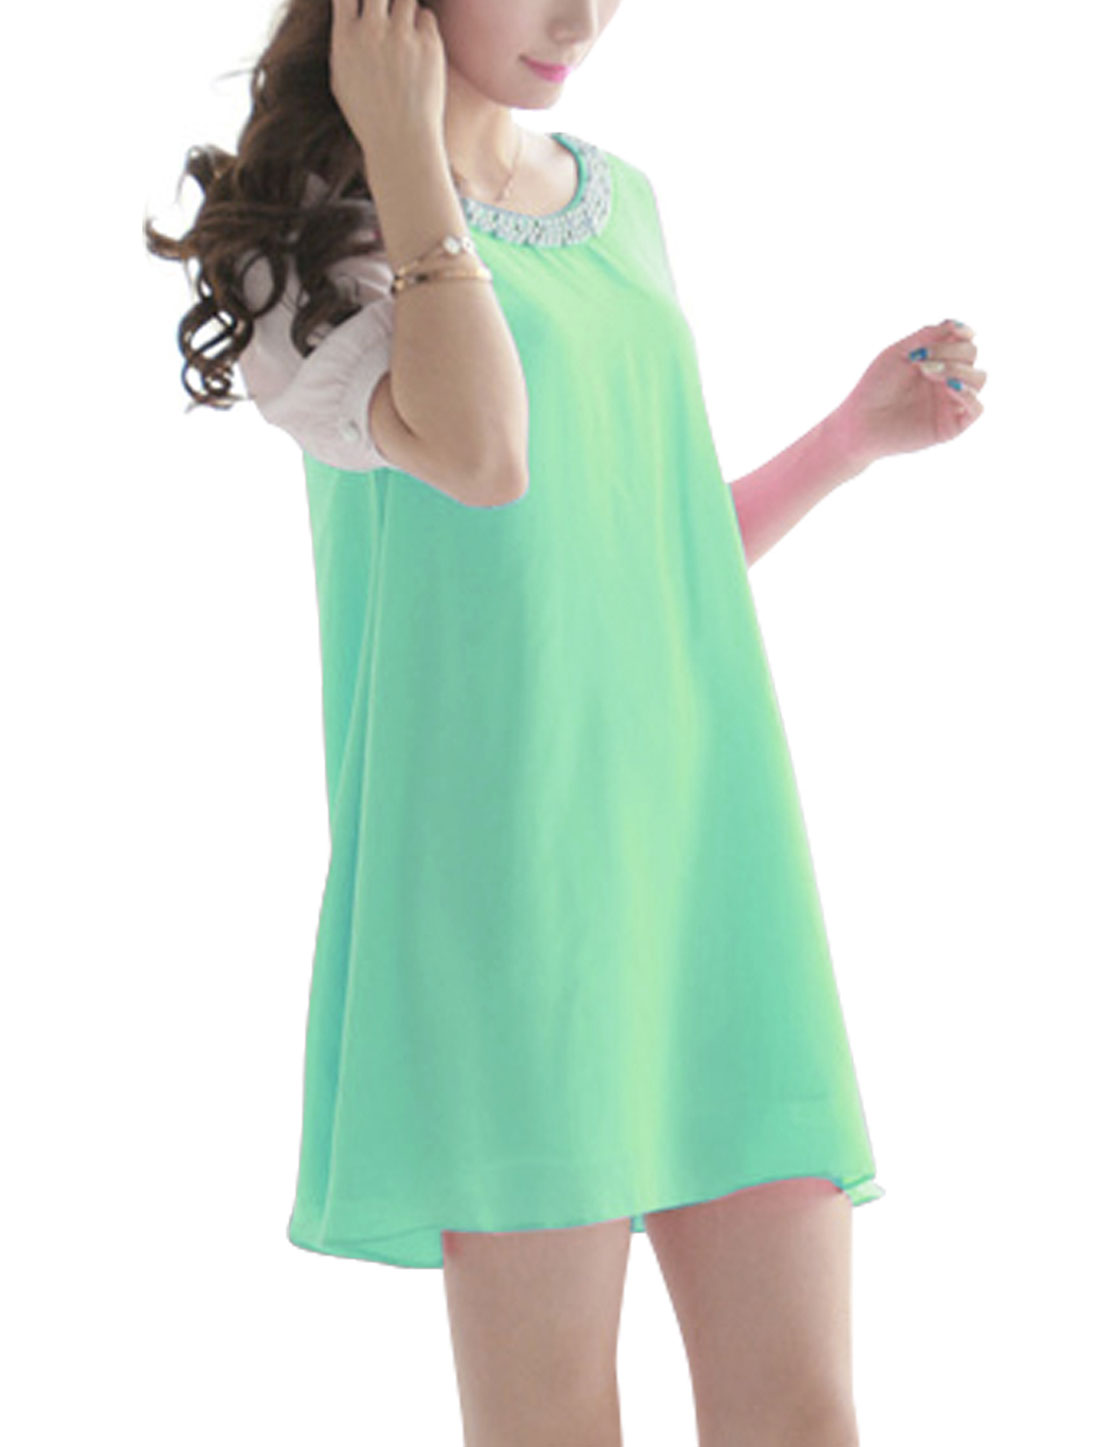 Ladies Round Neck Short Sleeve Lining Dress Aqua S